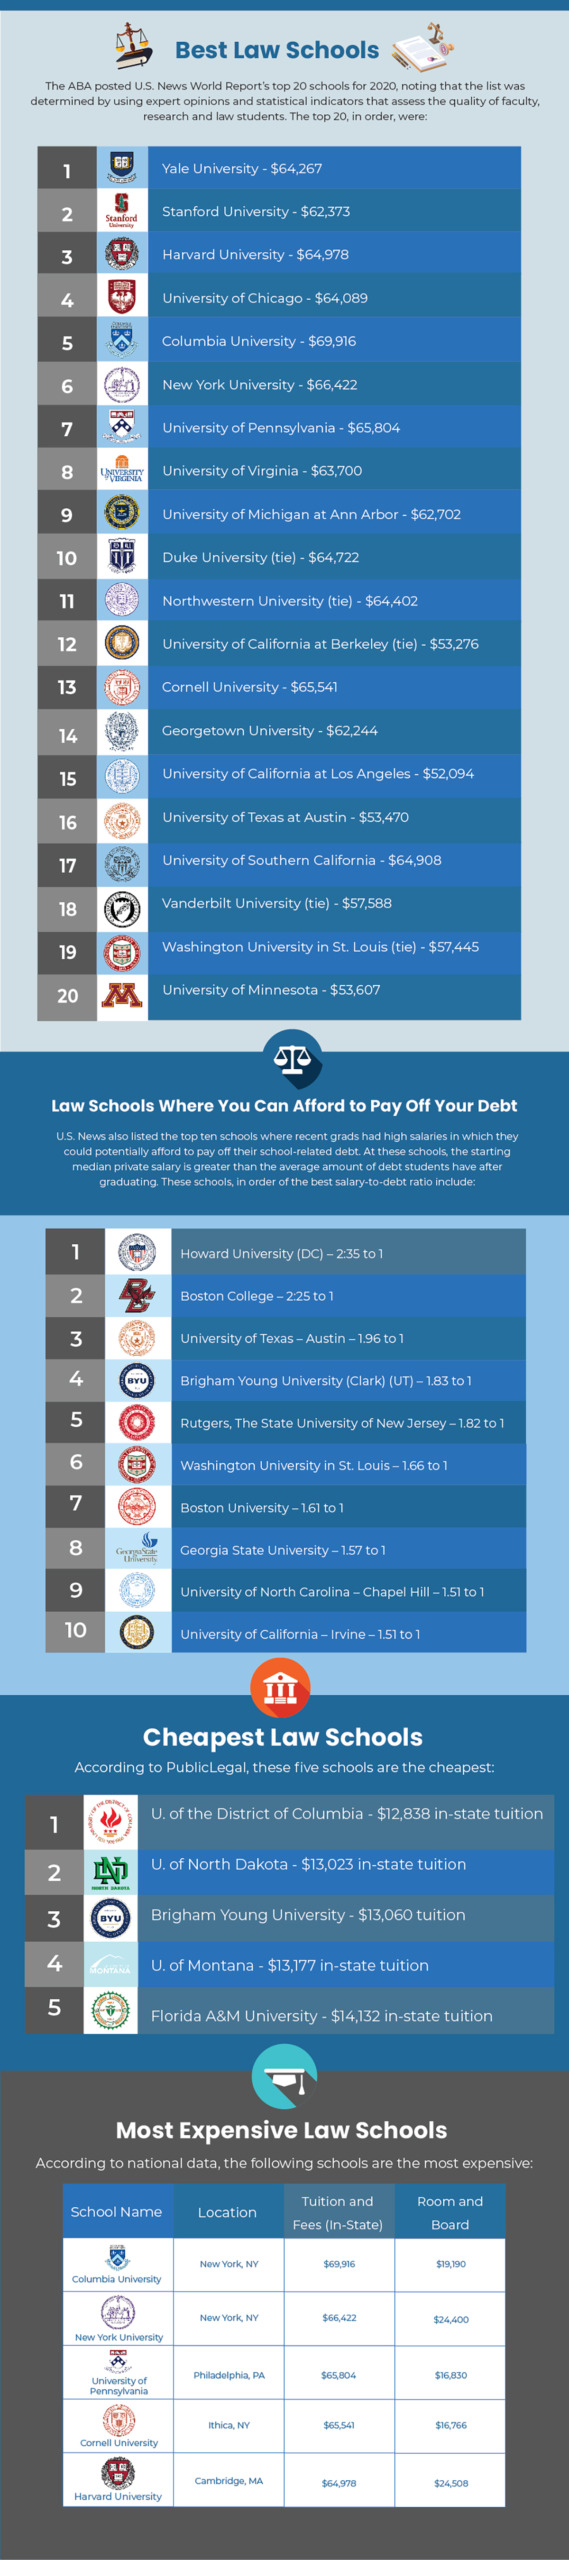 How Much Does a Law Degree Cost? - Here's The Complete Breakdown (+ most affordable law schools)